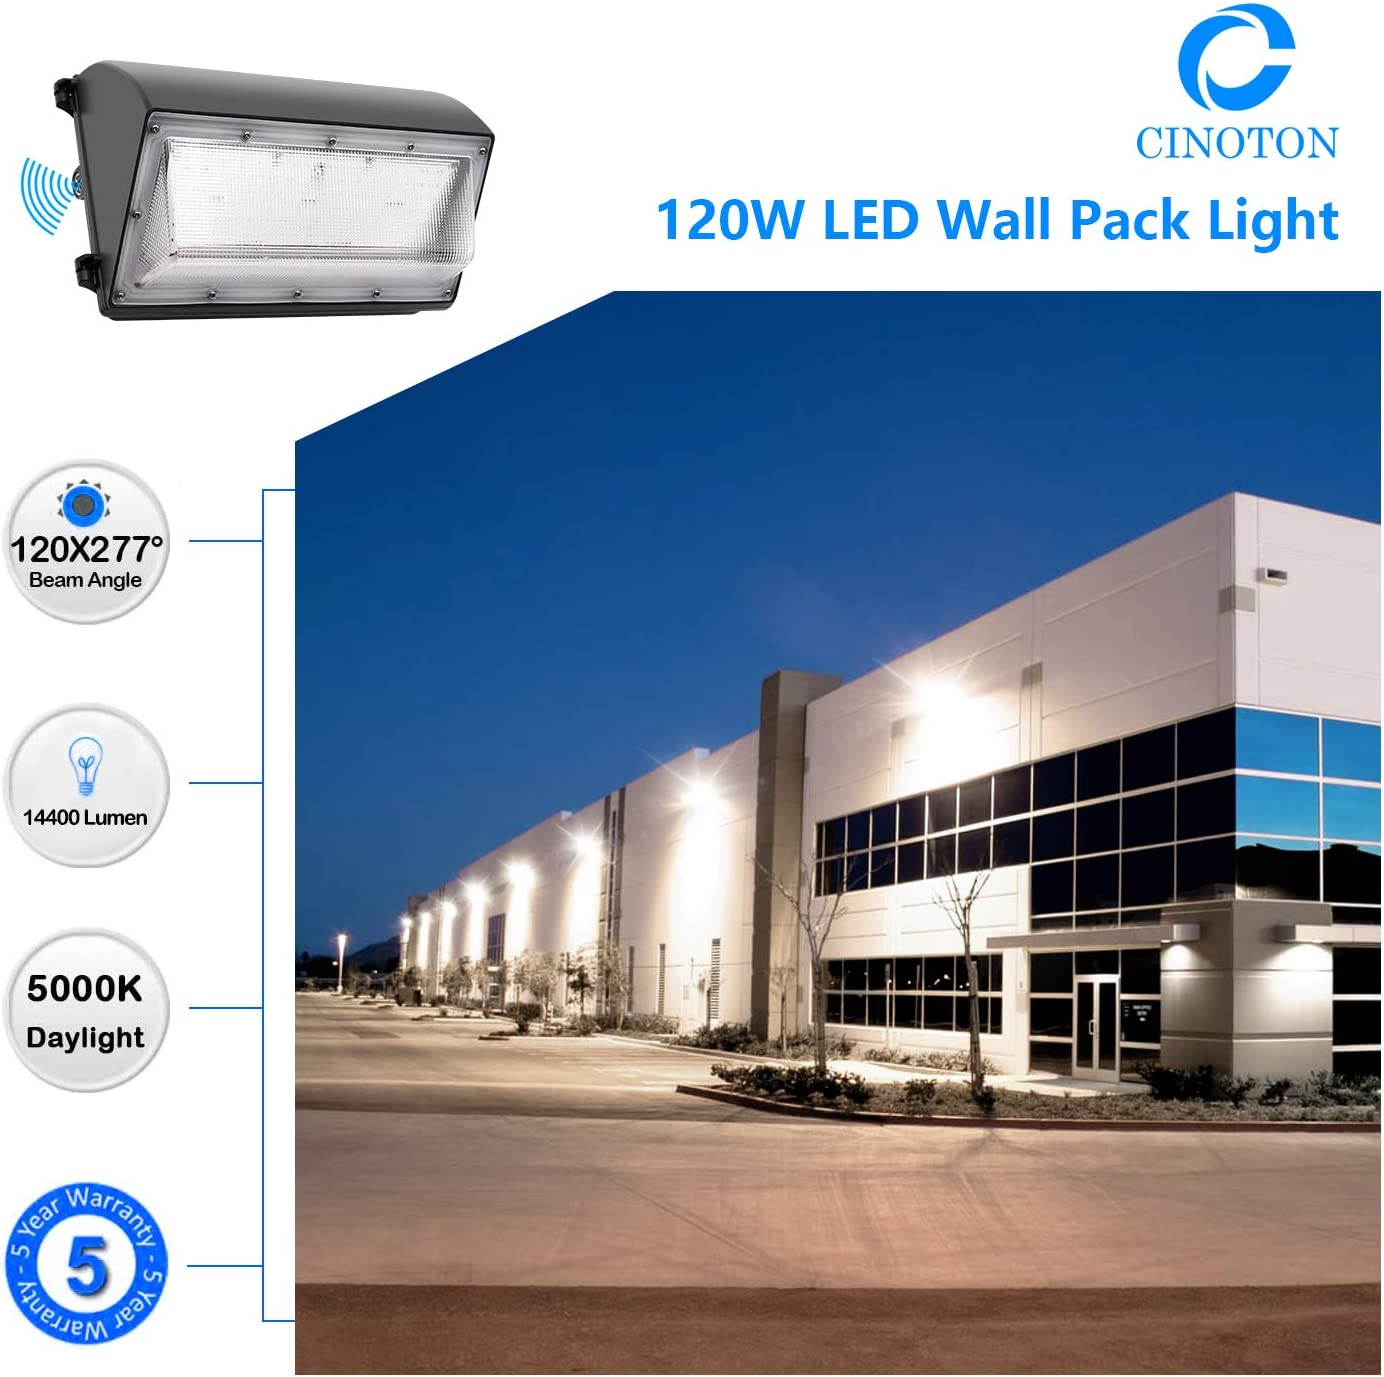 CINOTON LED Wall Pack Light